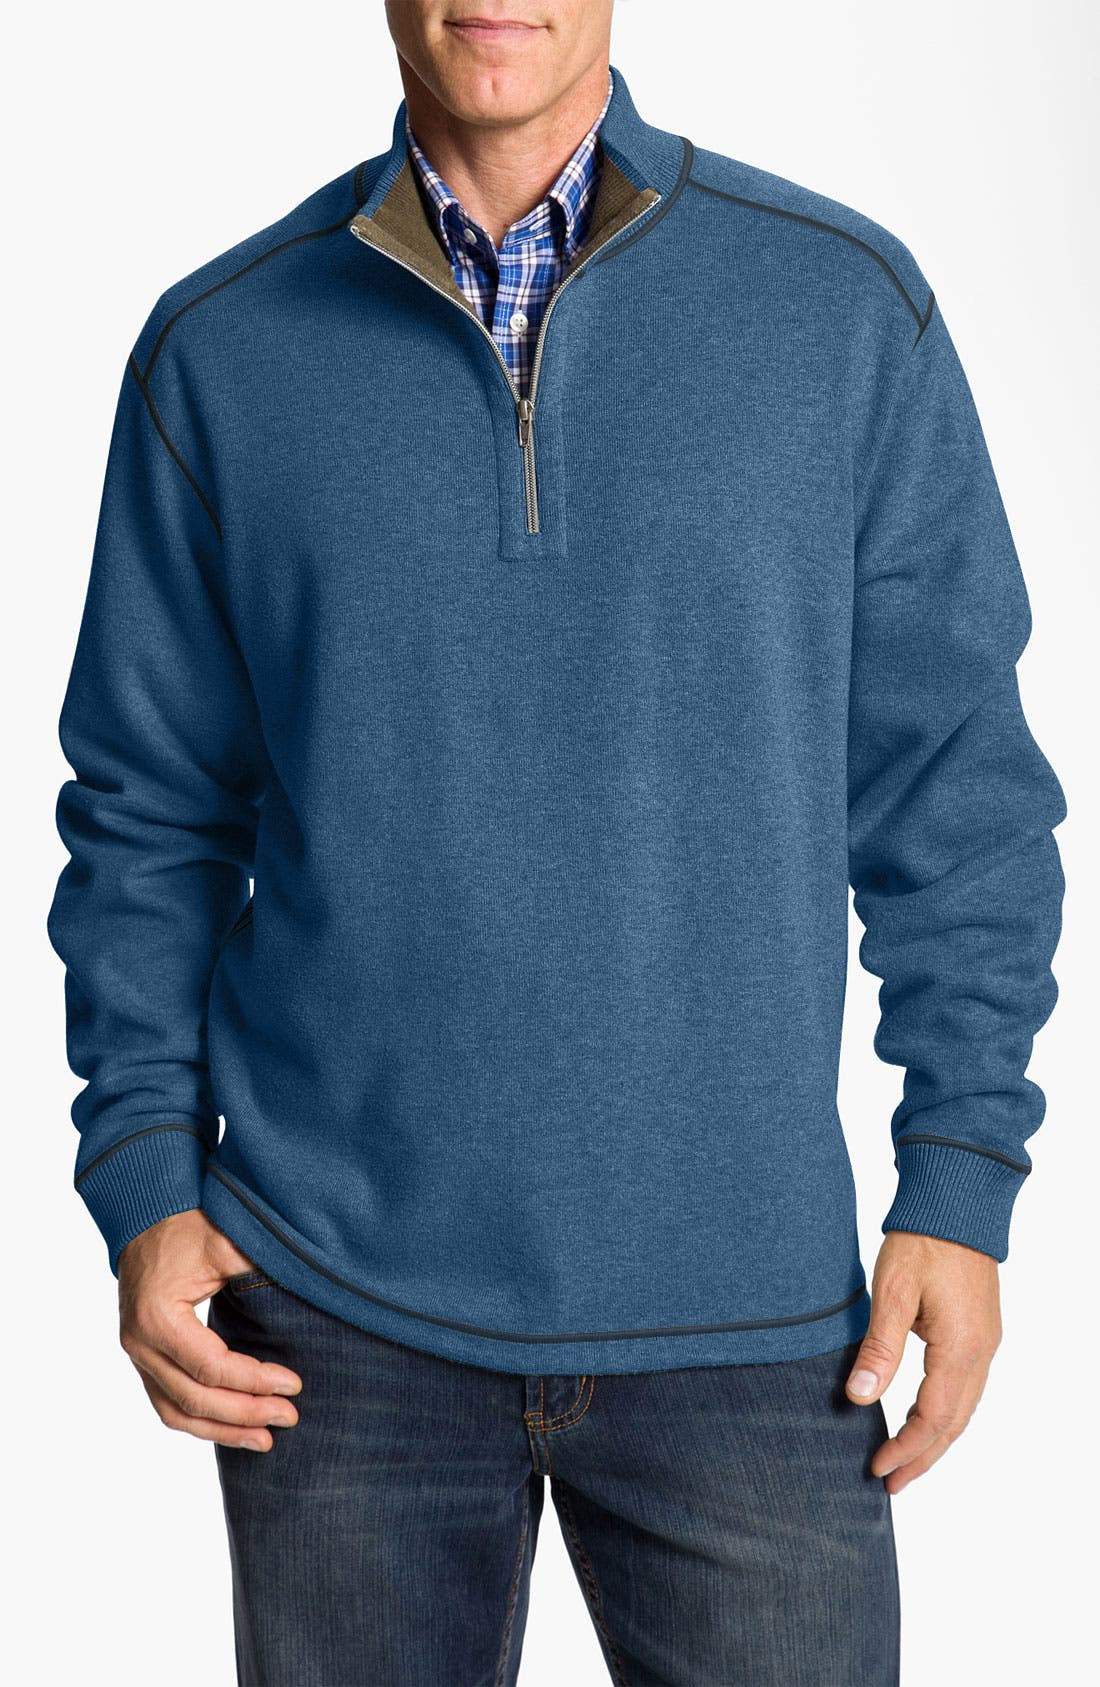 Alternate Image 1 Selected - Cutter & Buck 'Essex' Reversible Half Zip Sweatshirt (Big & Tall)